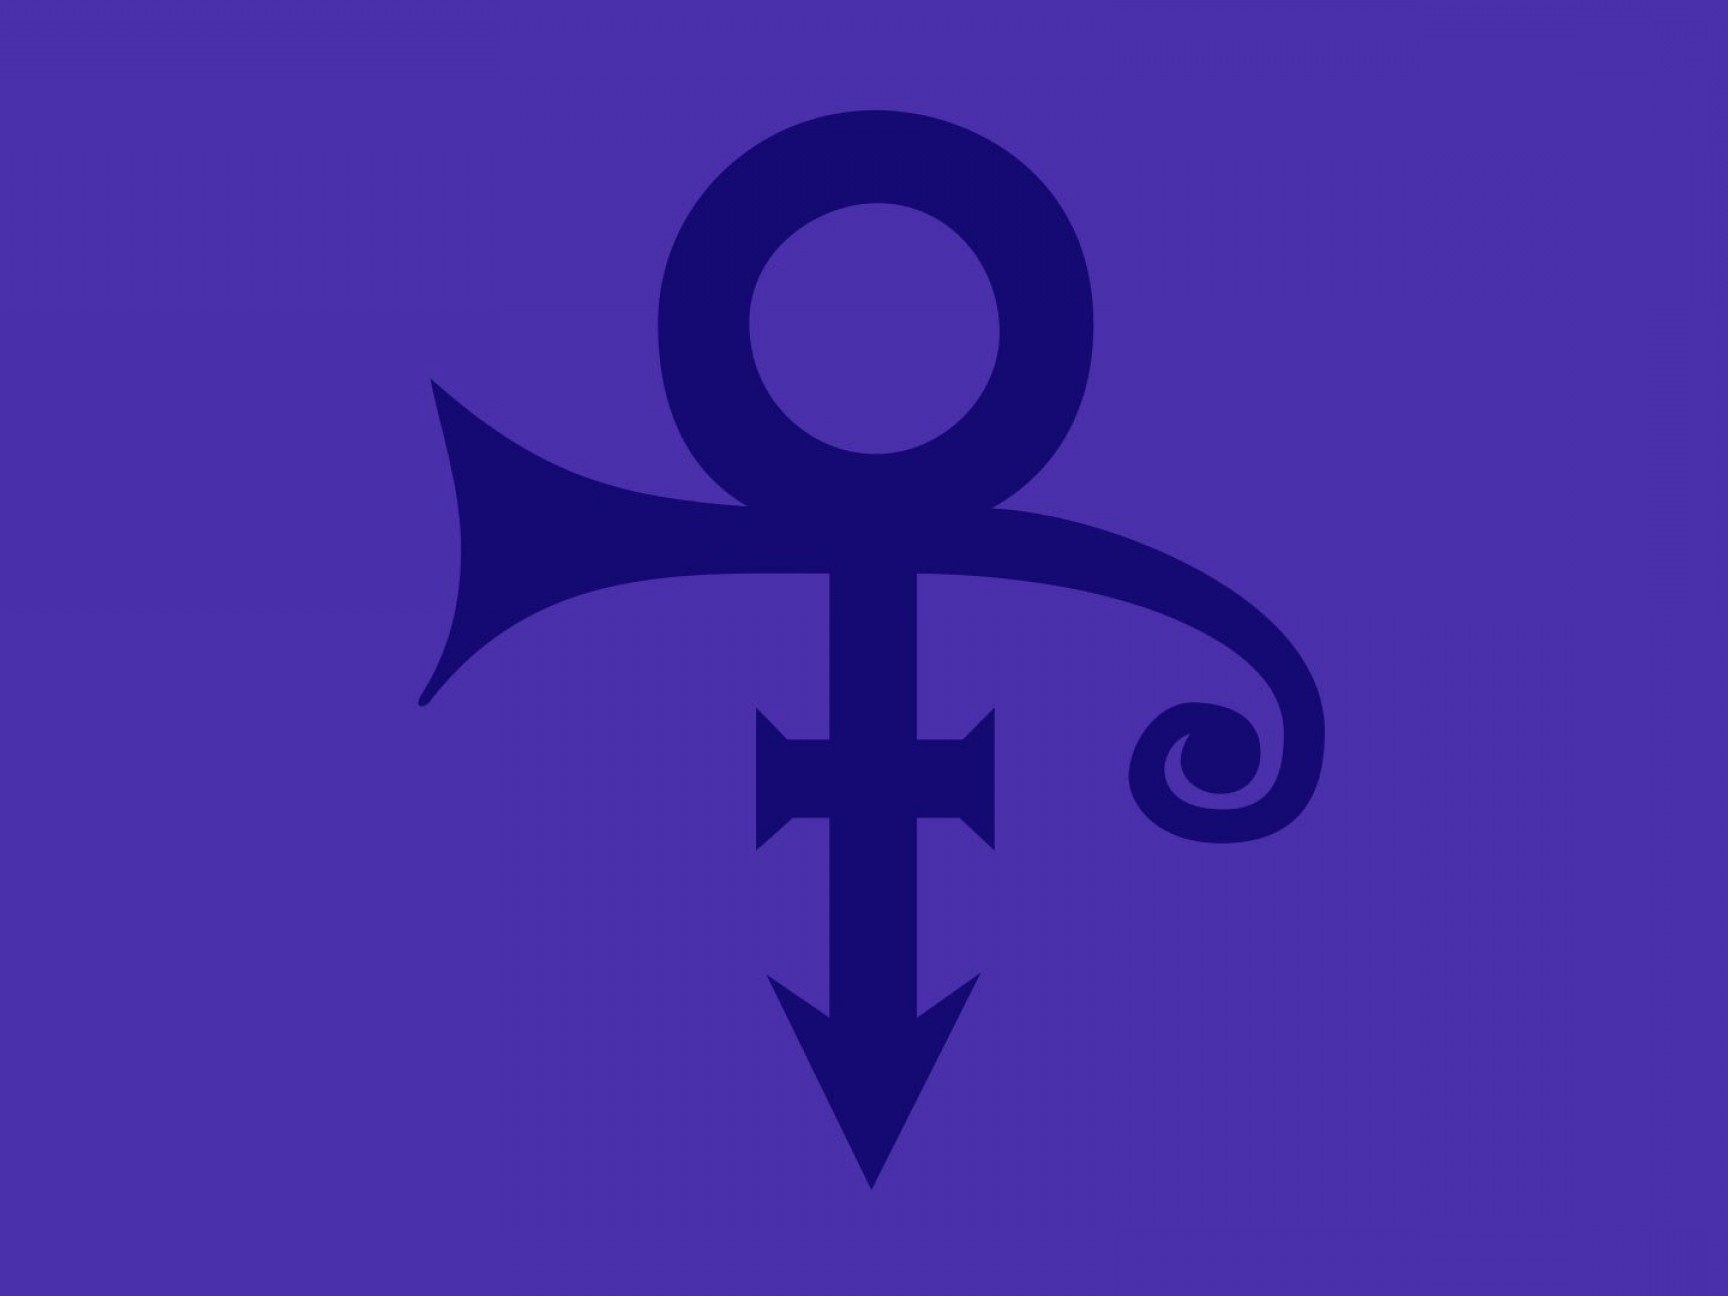 Singer Prince Symbol Vector: Designers Came Princes Love Symbol One Night